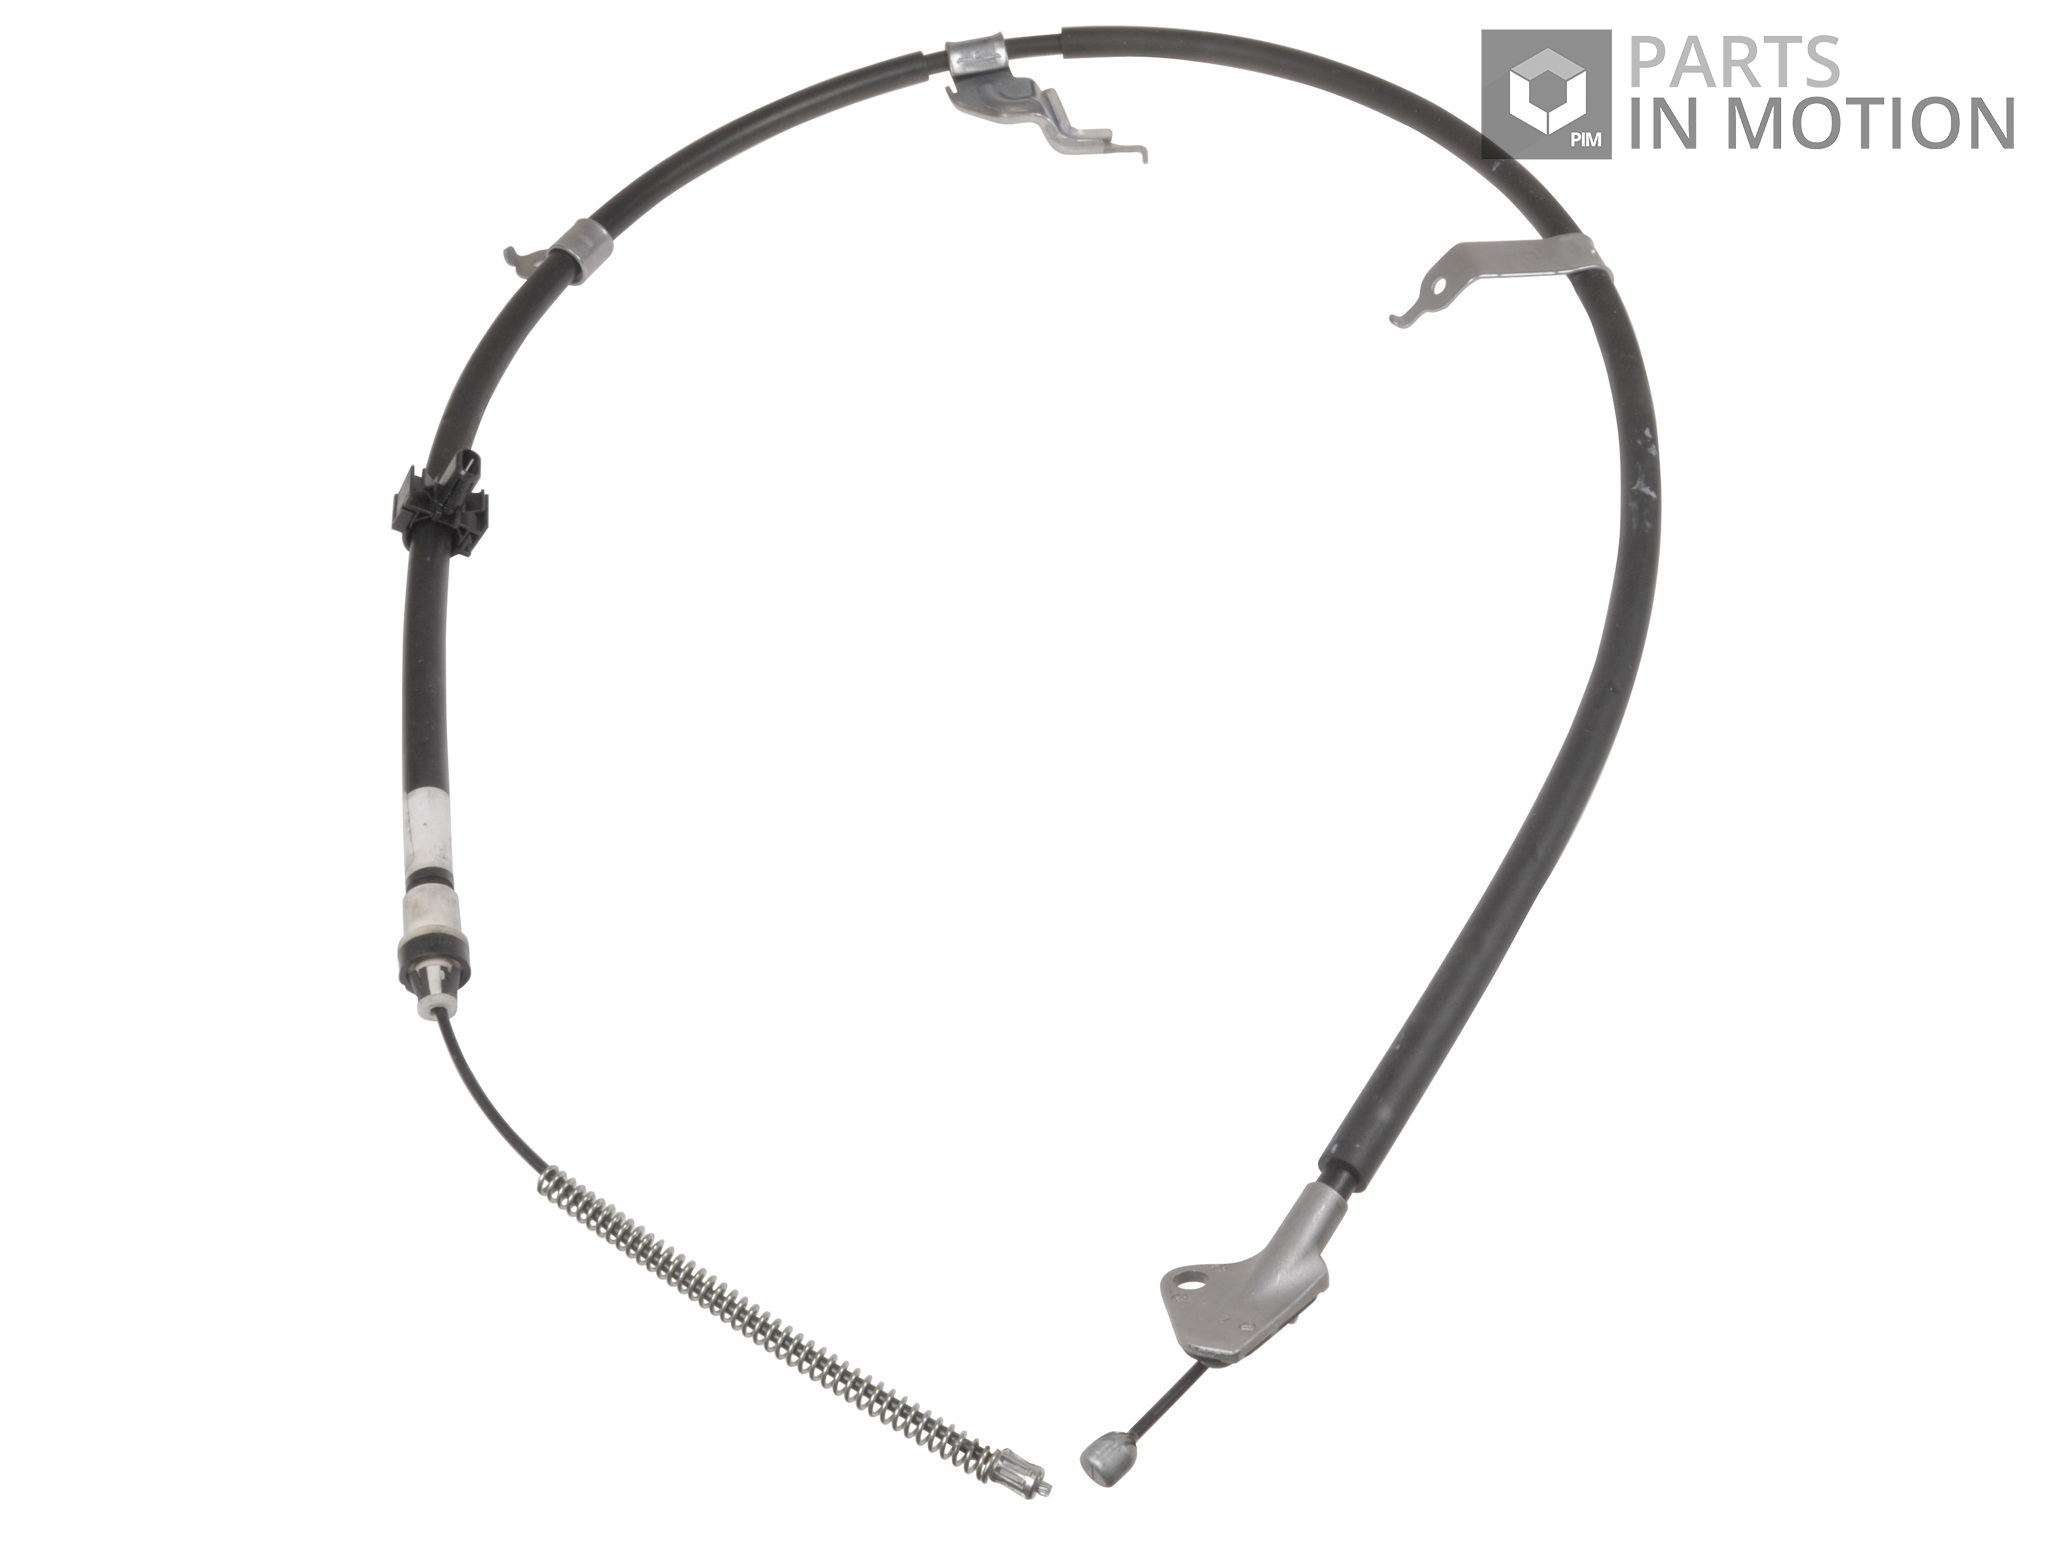 Handbrake Cable fits TOYOTA YARIS P9 1.0 Rear Left 2005 on 1KR-FE Hand Brake ADL